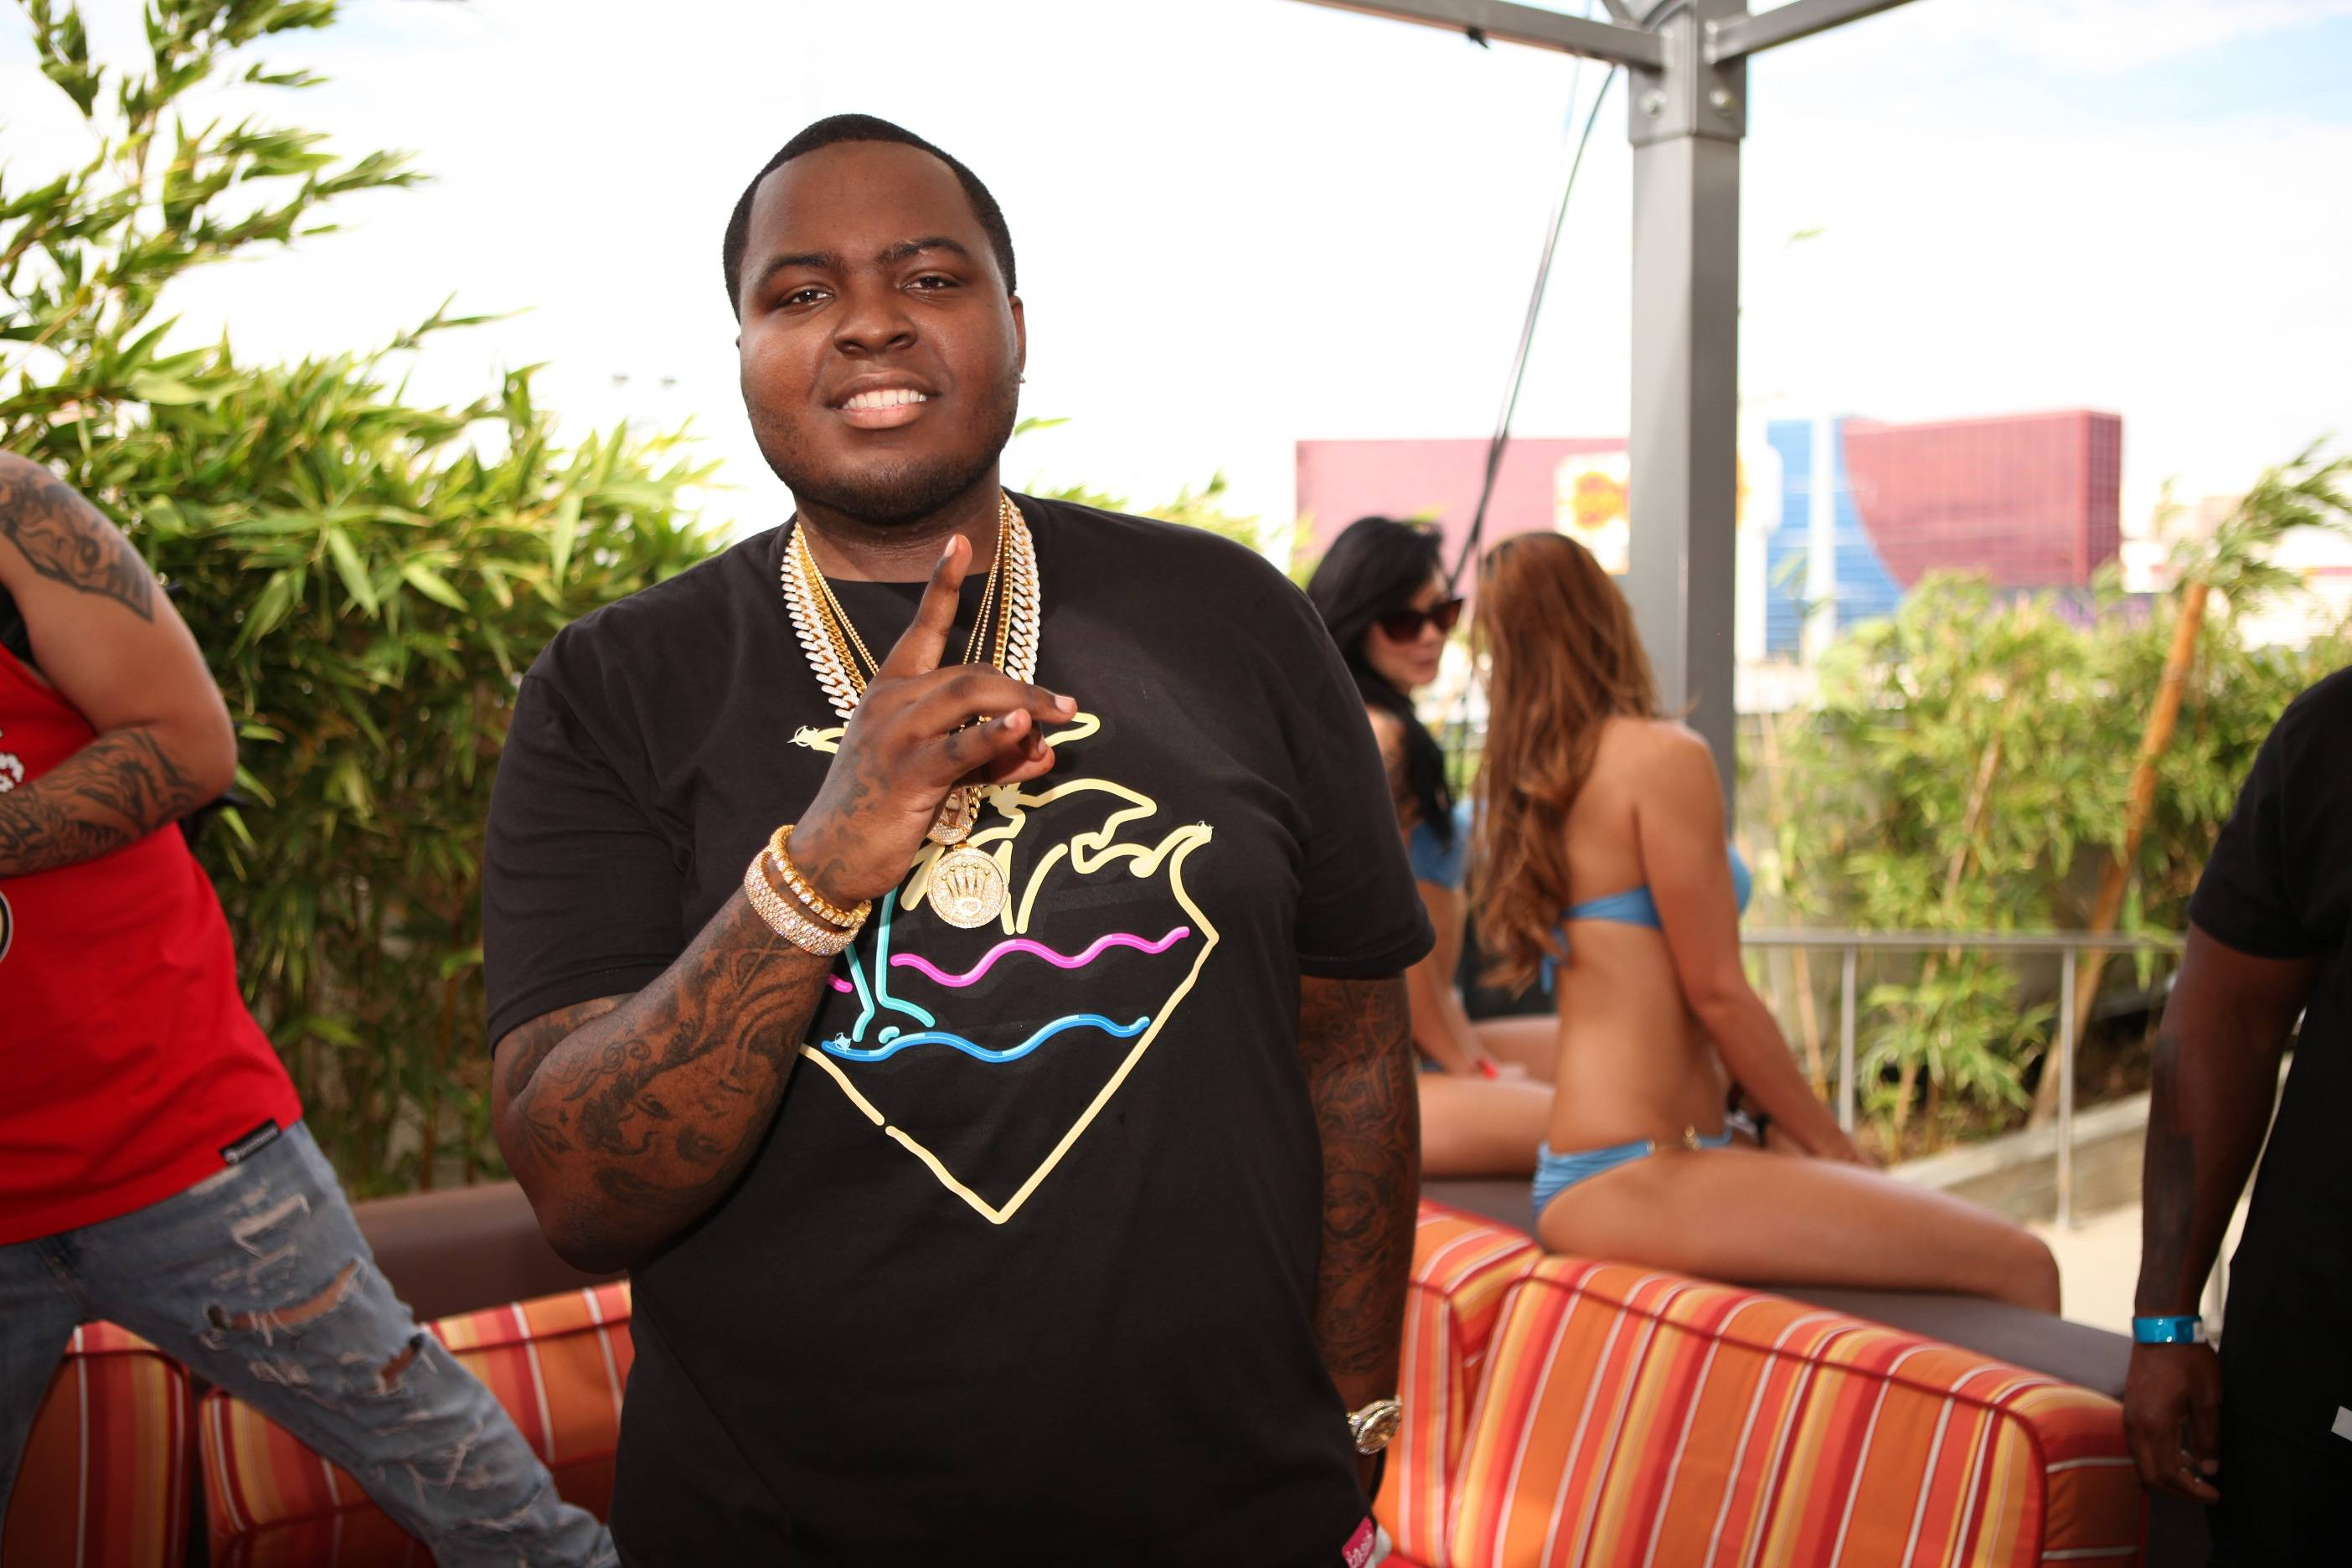 Sean Kingston at VIP table